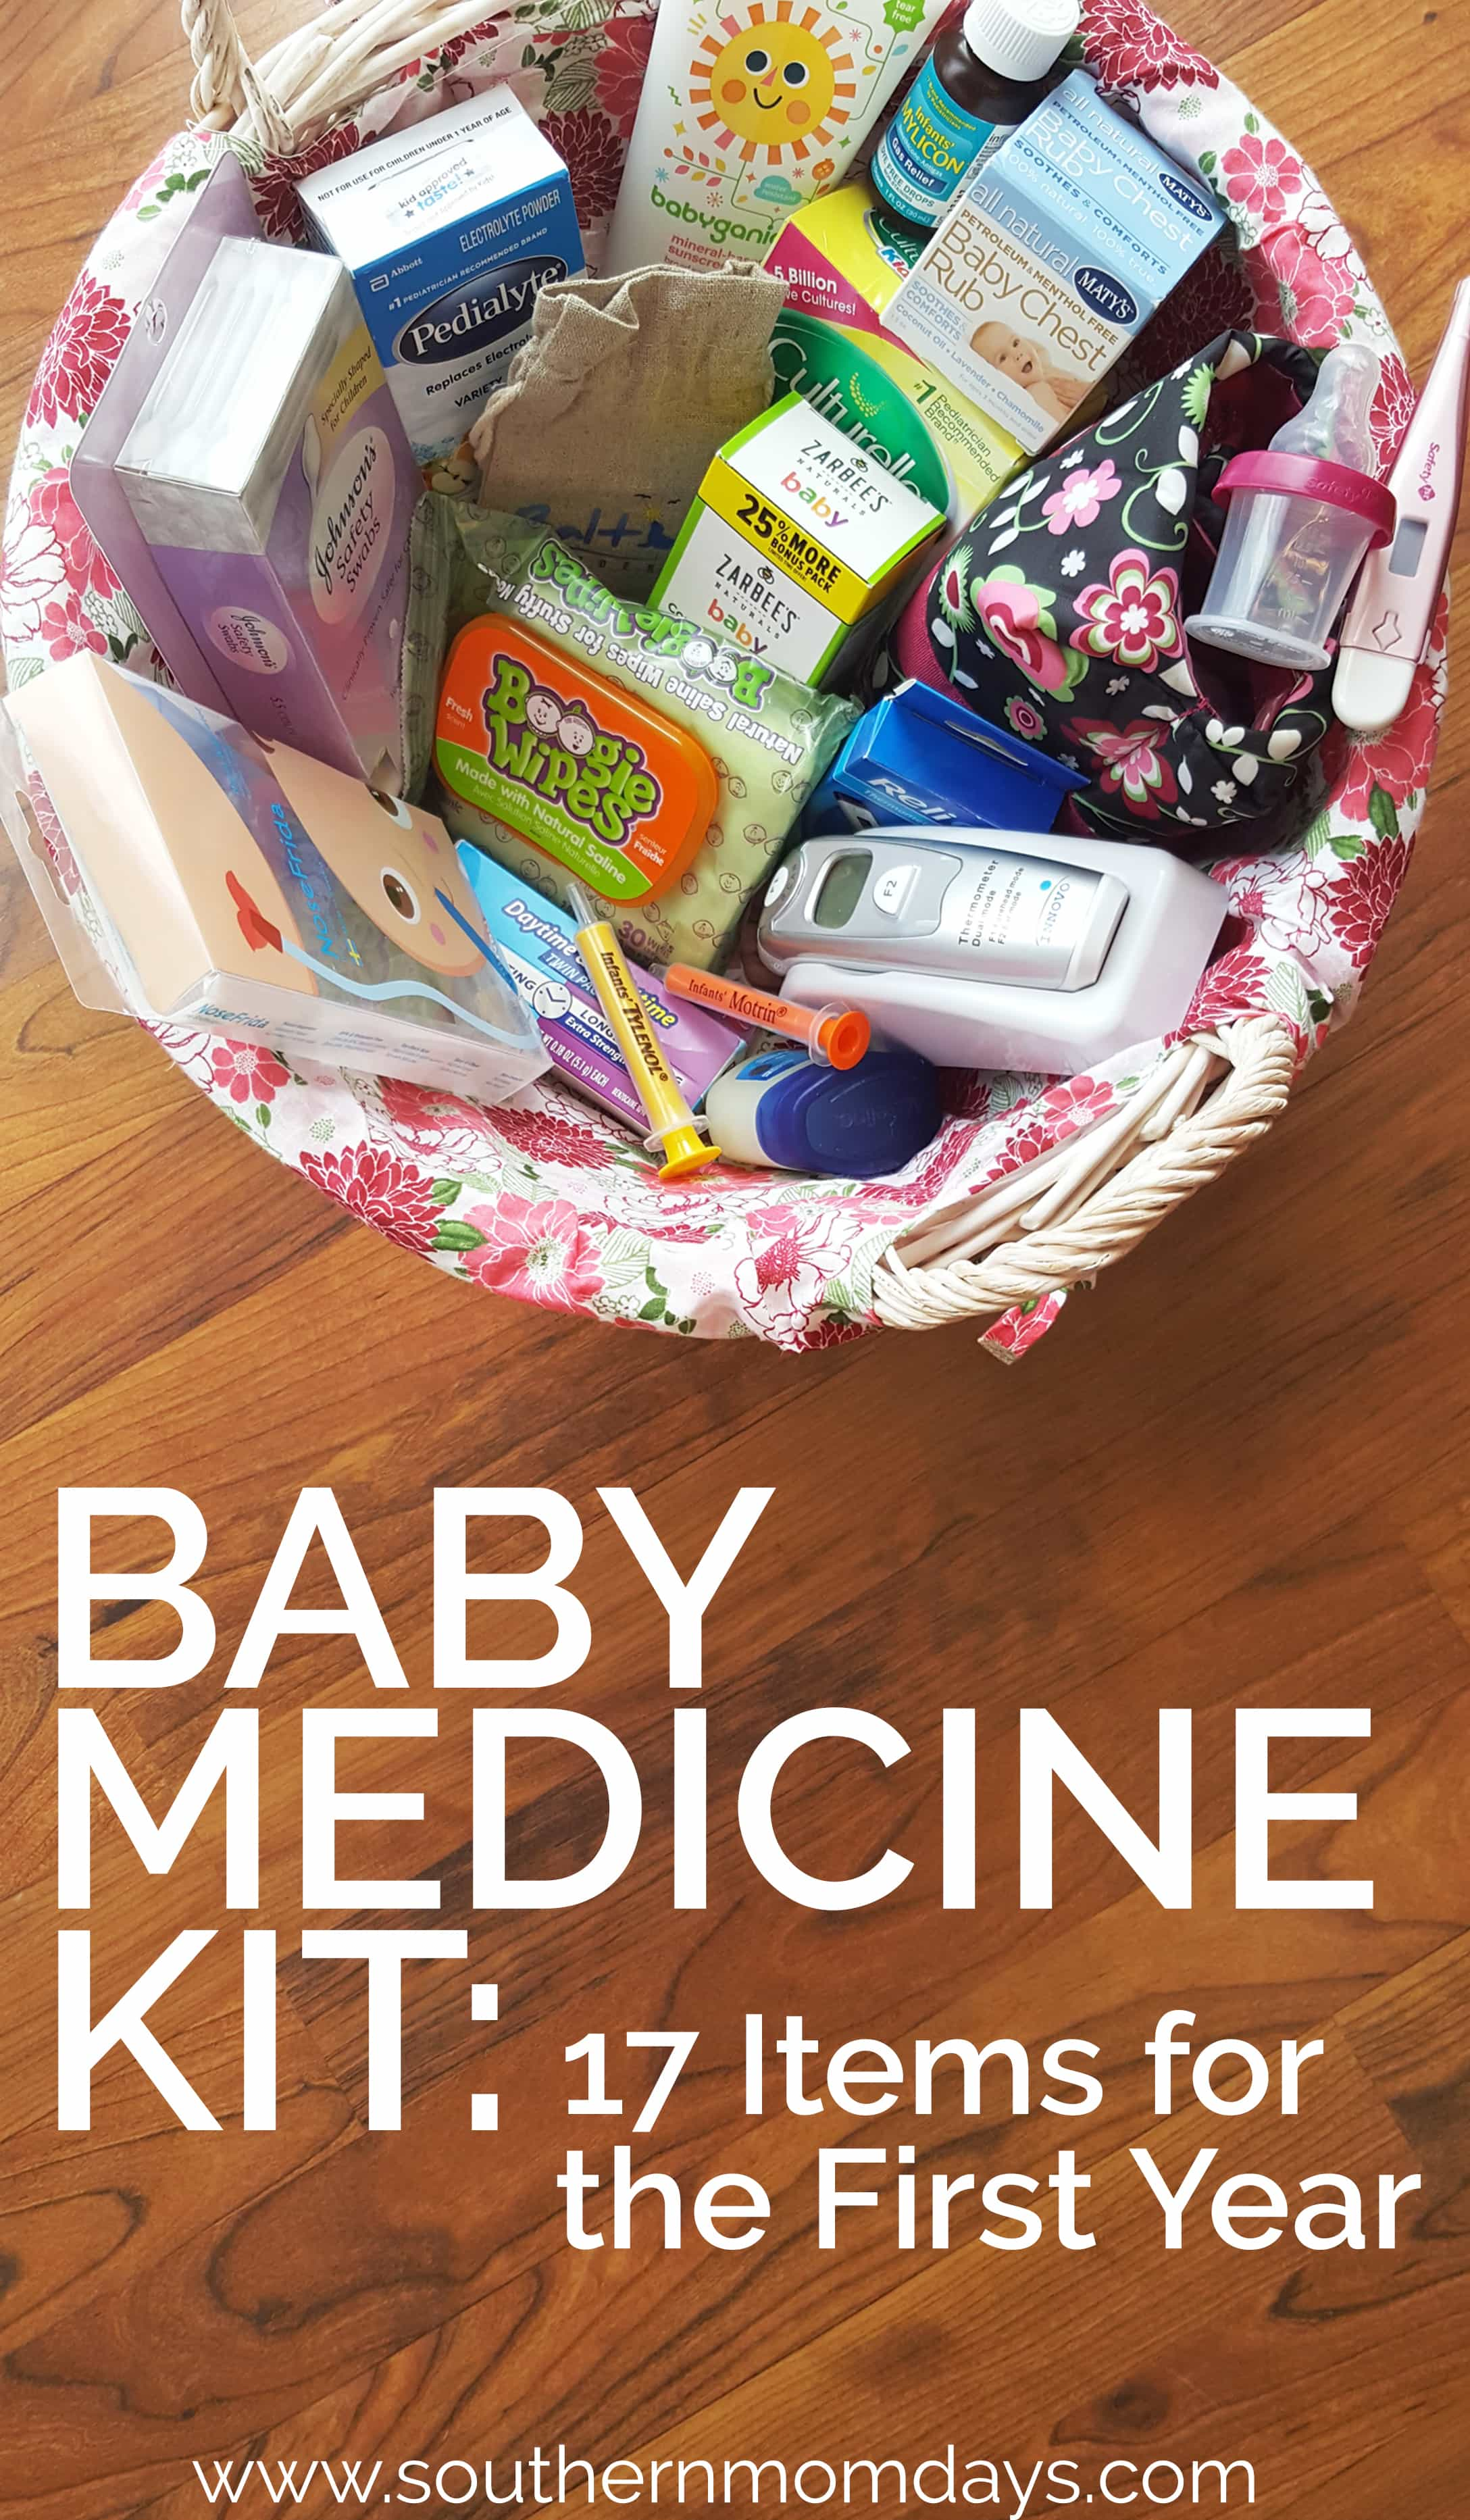 Baby Medicine Kit with 17 Items you need for the first year, featured on Southern Momdays blog